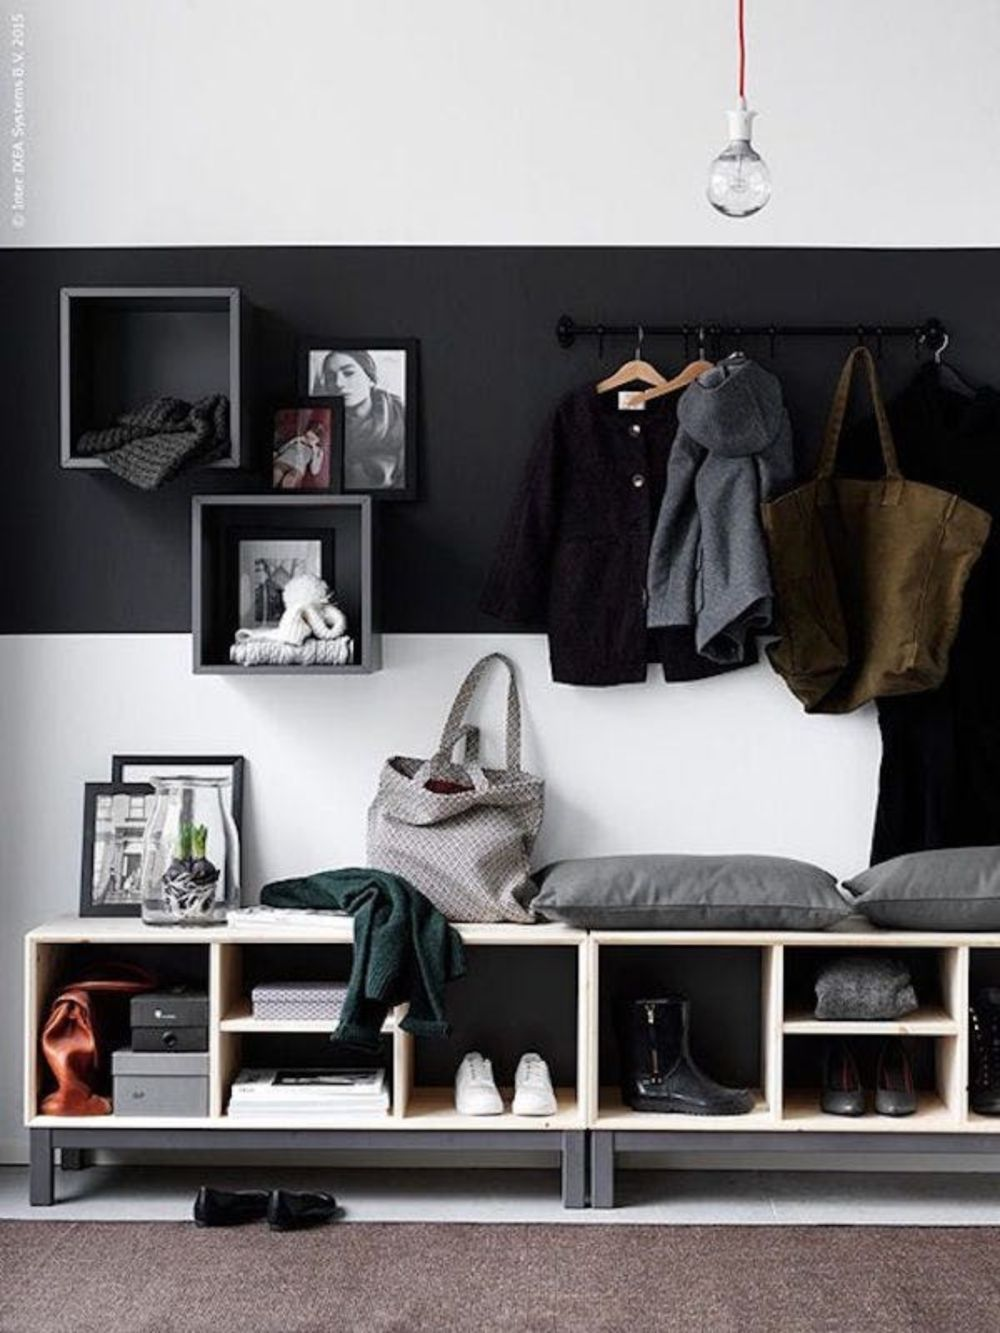 37 Brilliant IKEA Hacks Ideas on A Budget Ikea hack Budgeting and